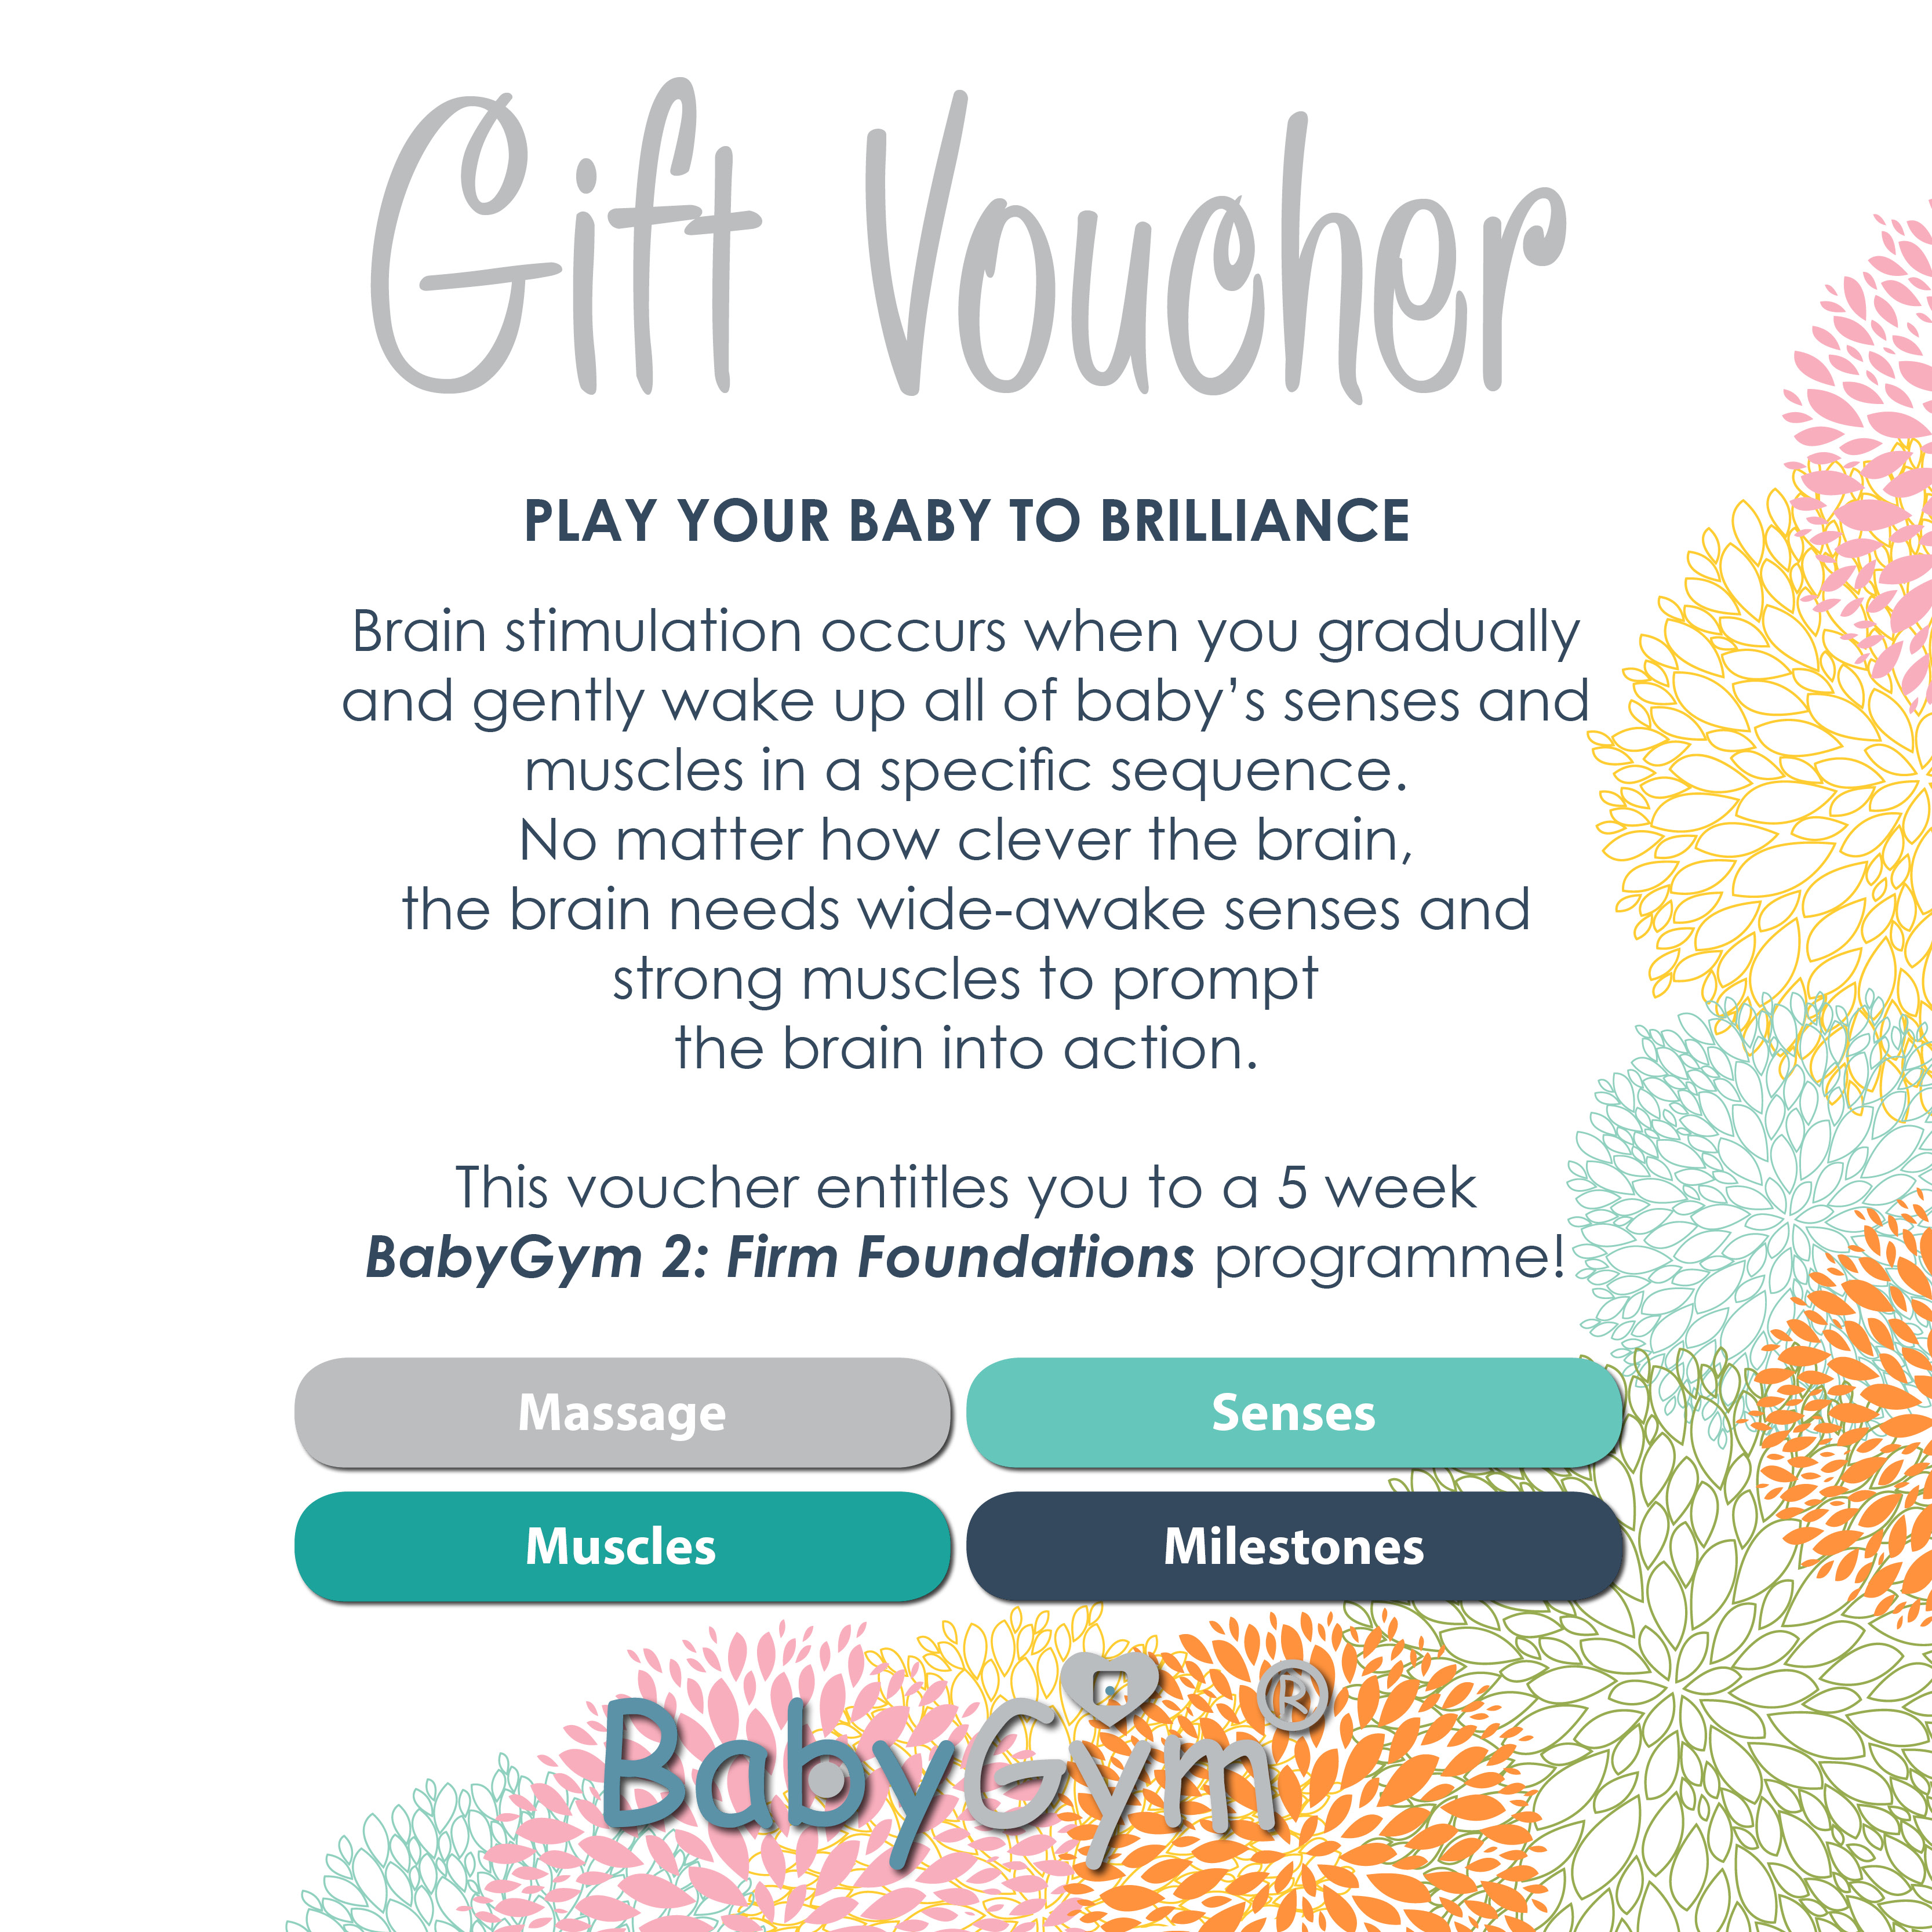 Book Shop Mind Moves Institute Babygym 2 Class Gift Voucher Gift